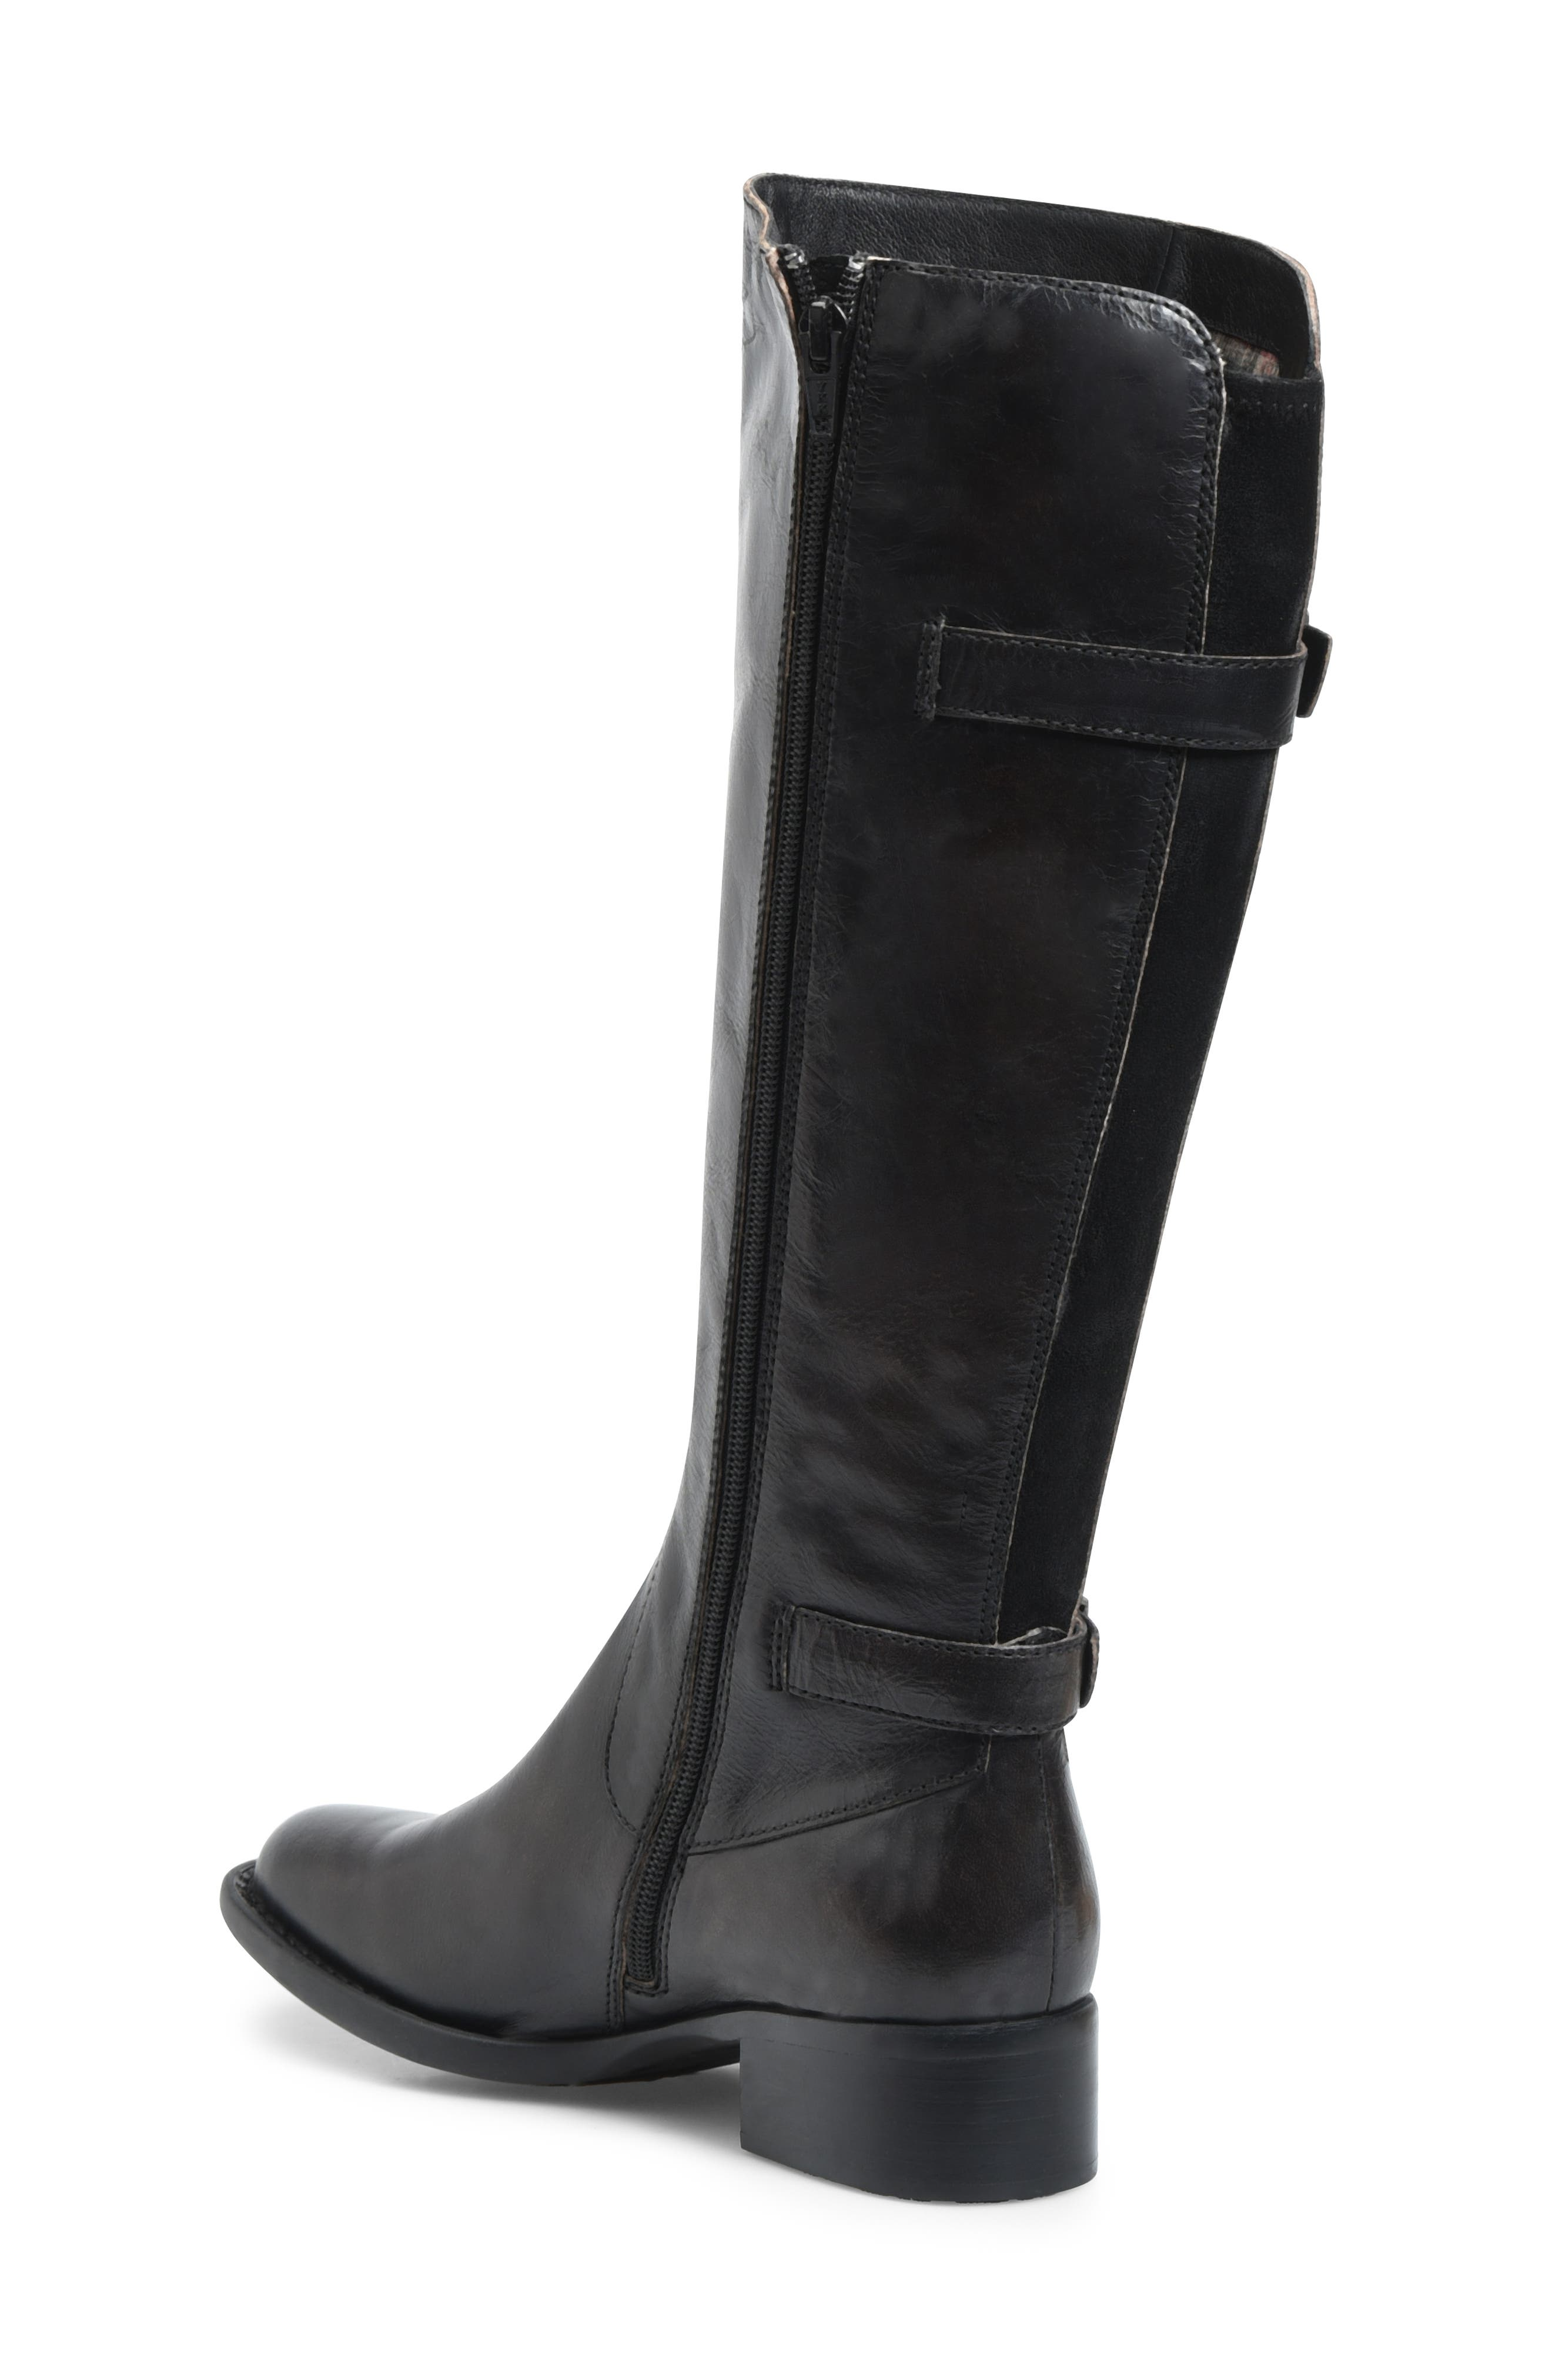 e28f41d0964 born boots for women